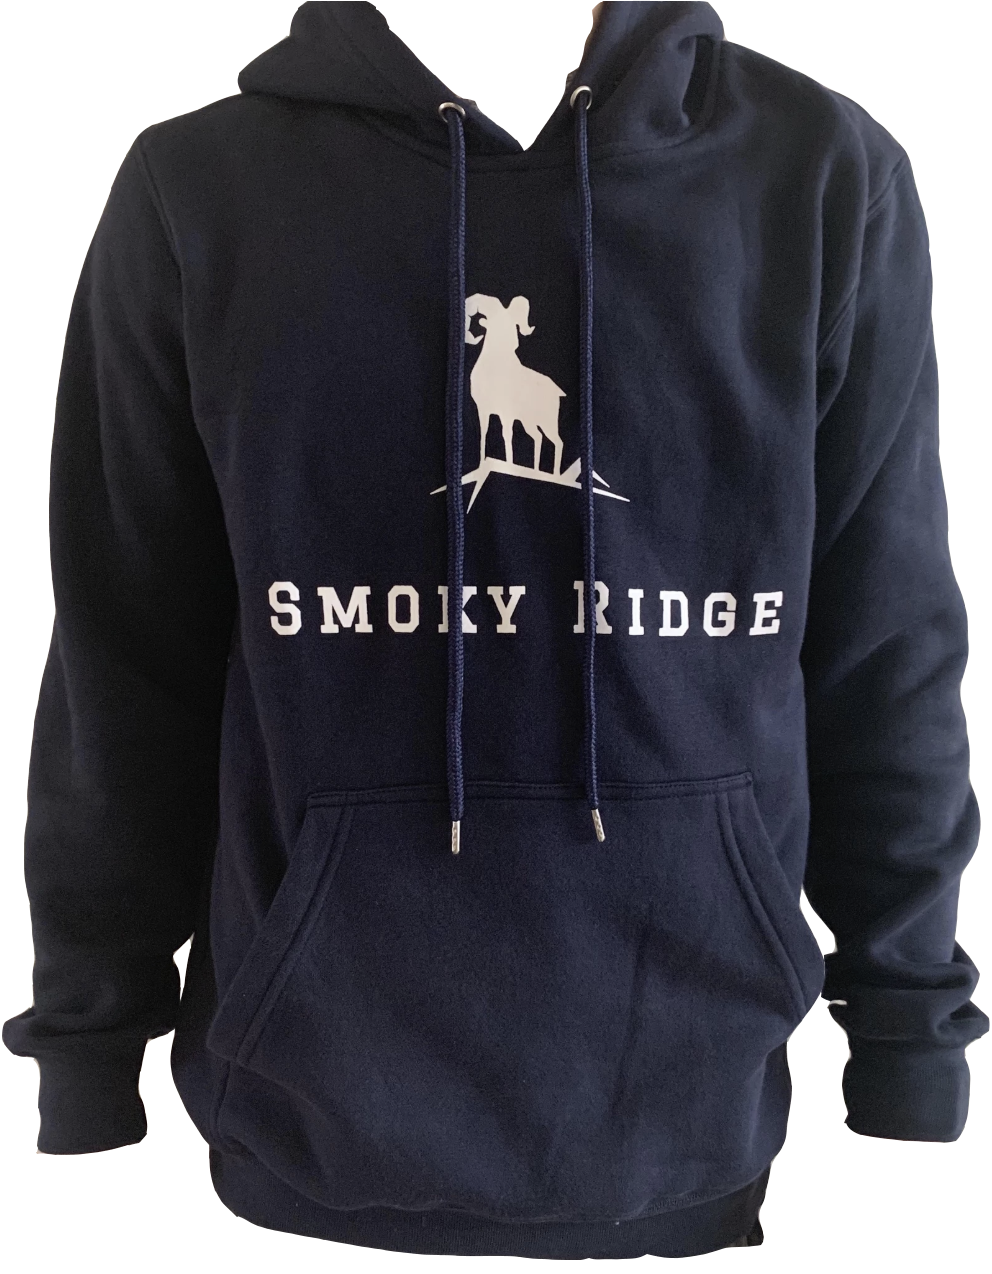 Hoodie - Navy Smoky Ridge Edition